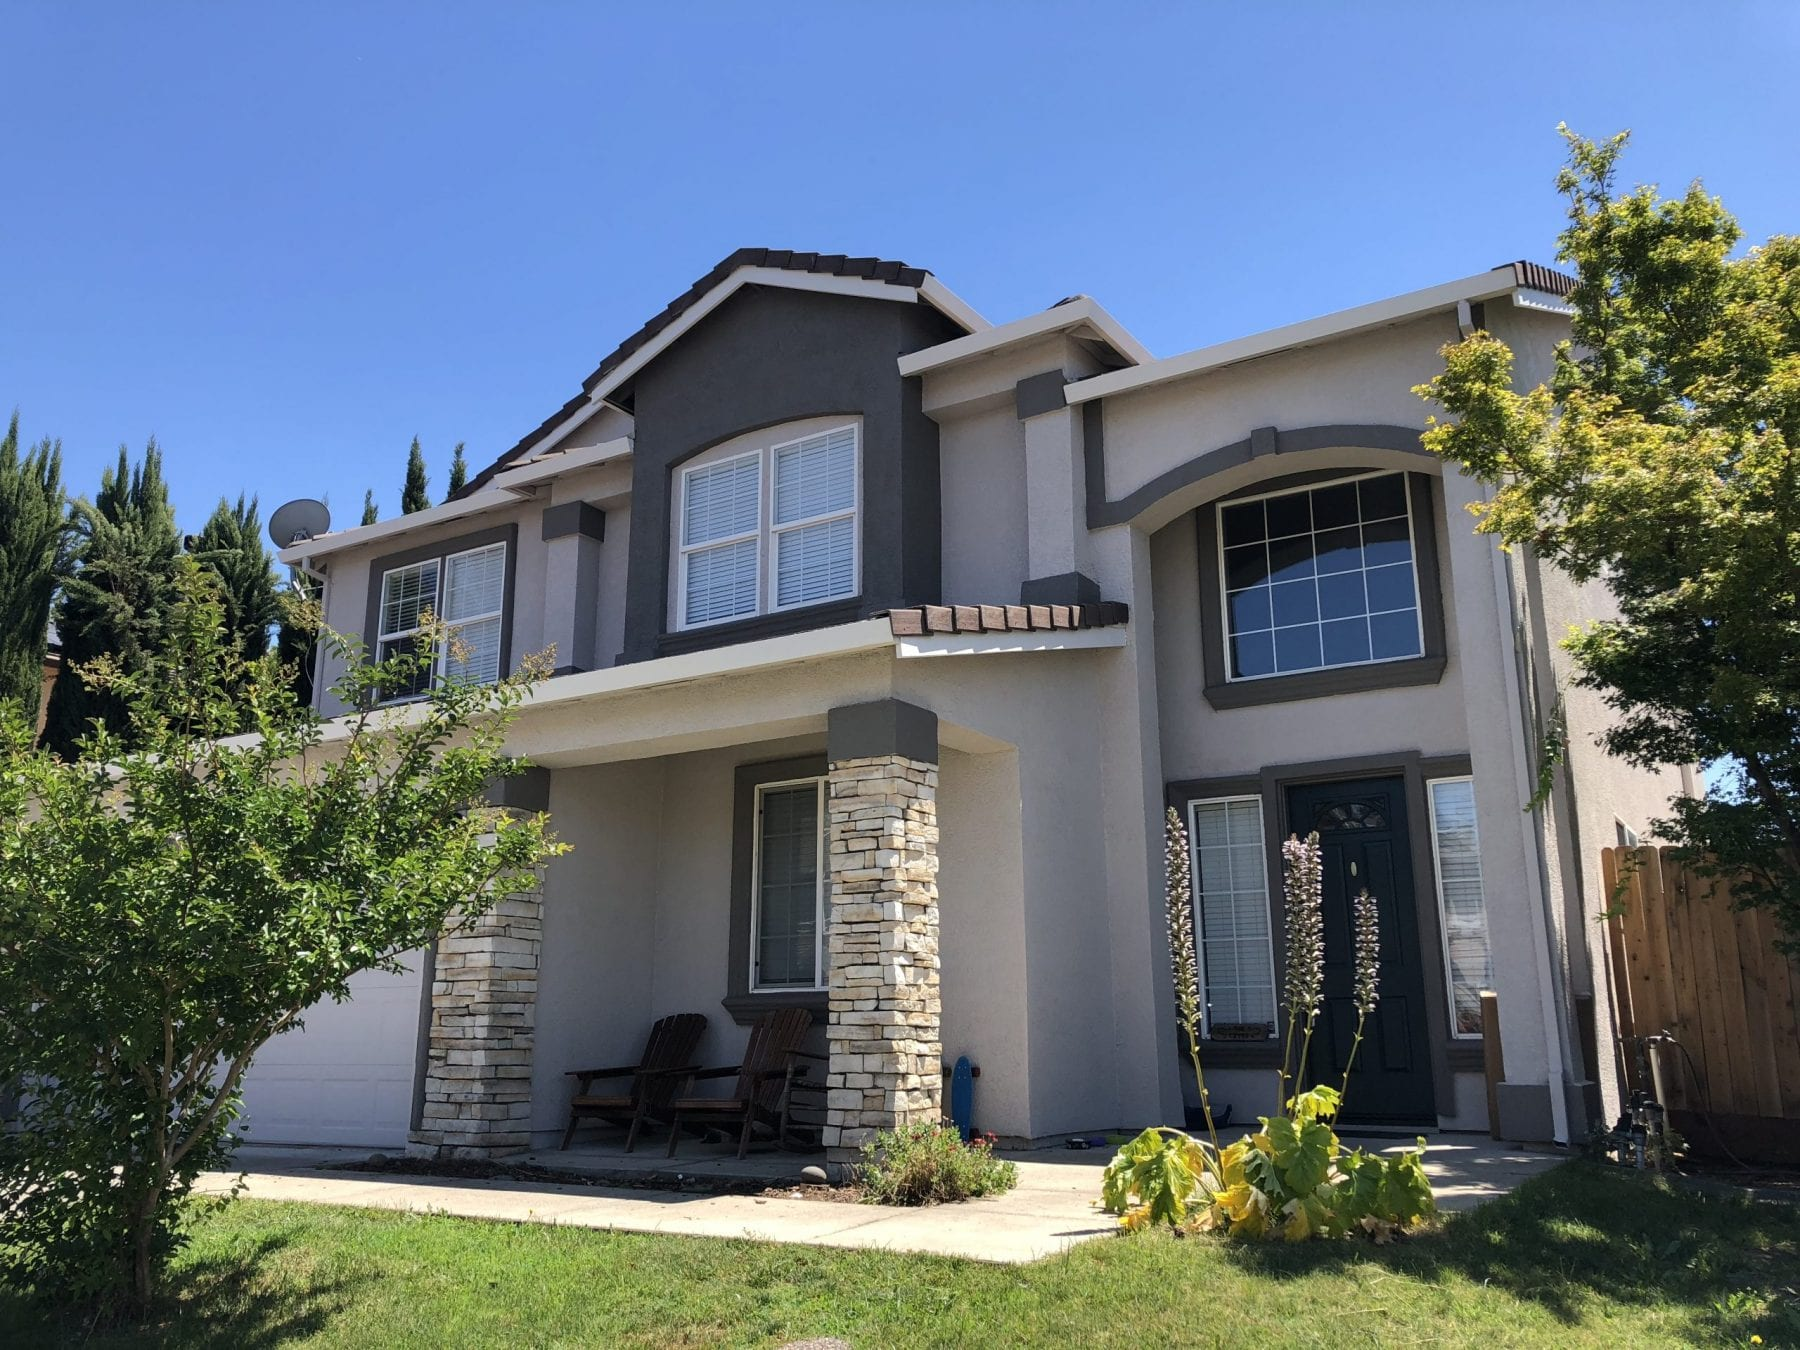 Exterior Painting Services Roseville CA | House Painters Roseville